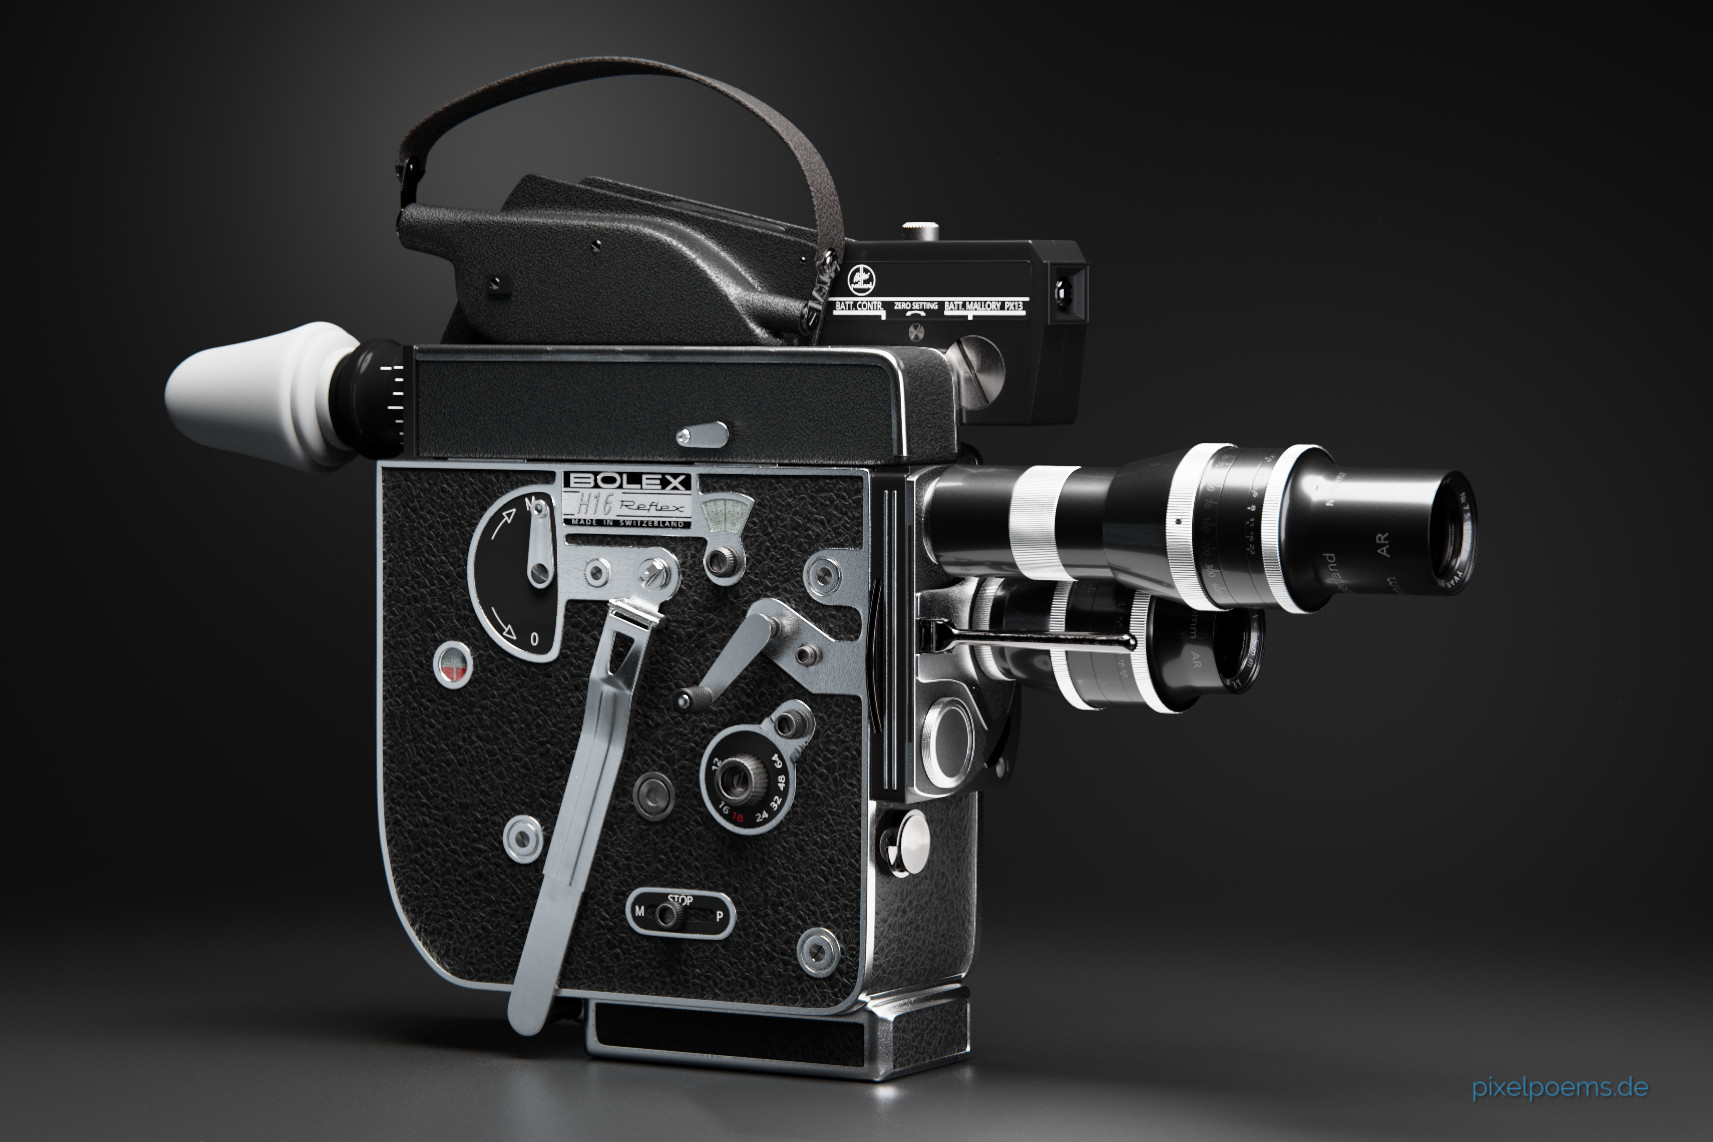 Karl andreas gross bolex h16 rex5 001